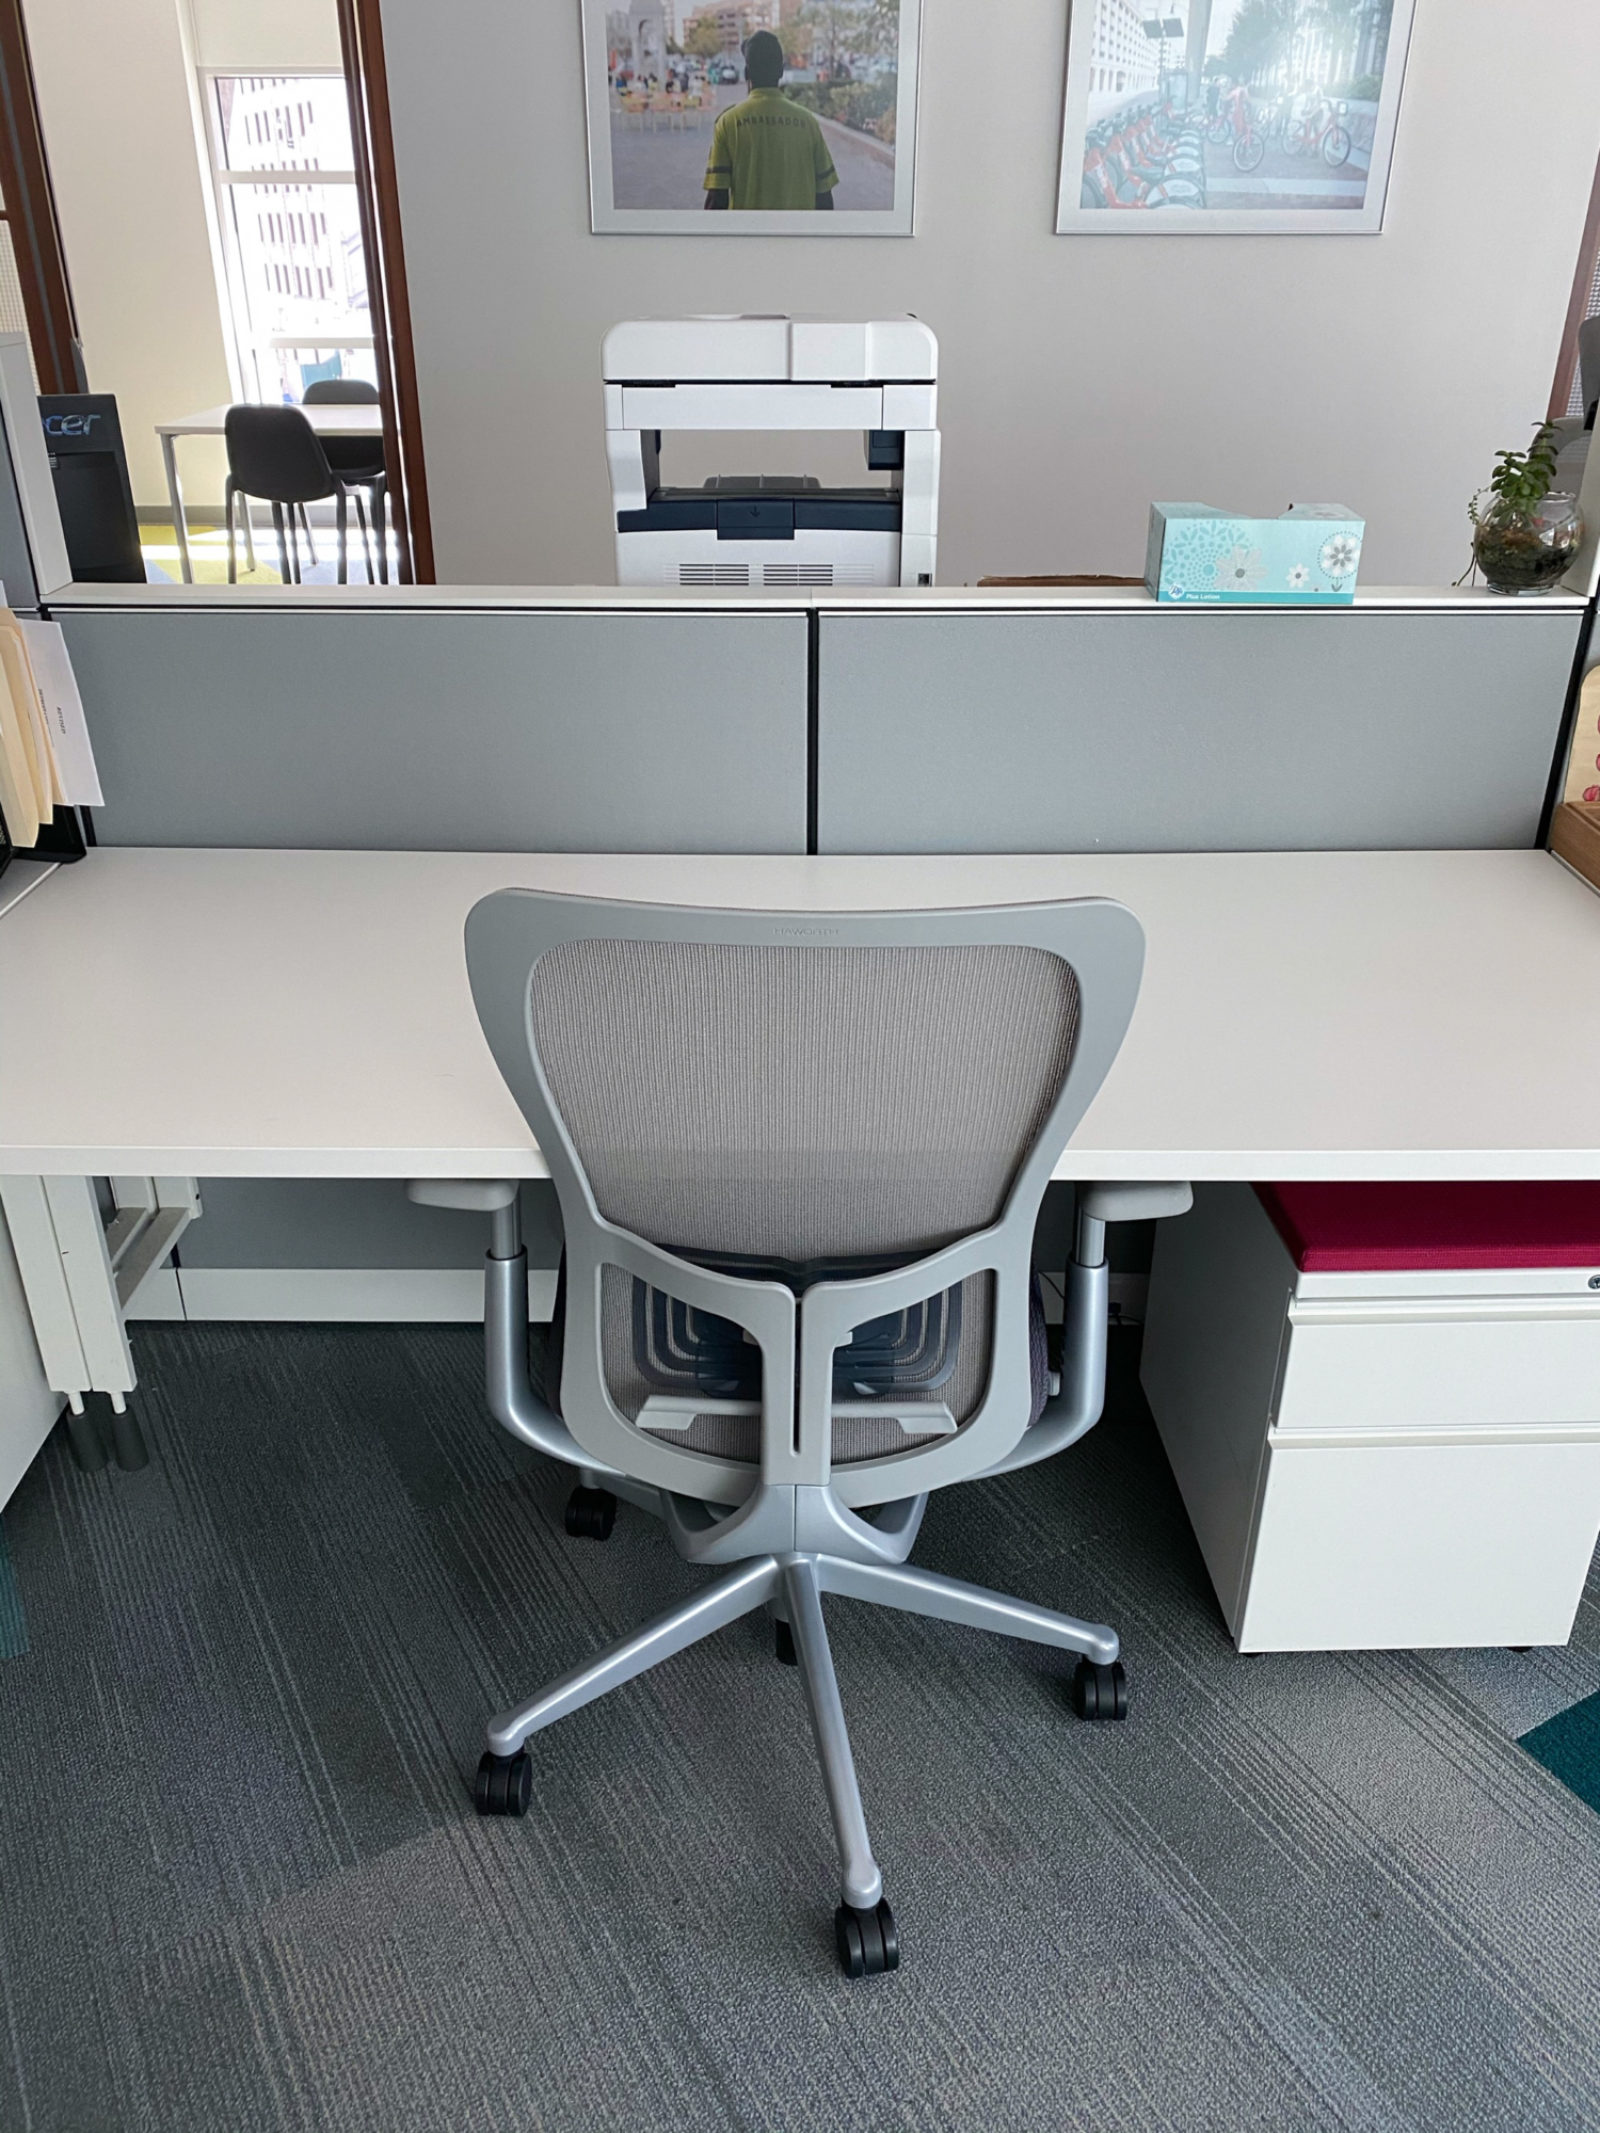 A picture of a workstation with a grey task chair in front of a white desk with grey panels and a white pedestal with a red top.